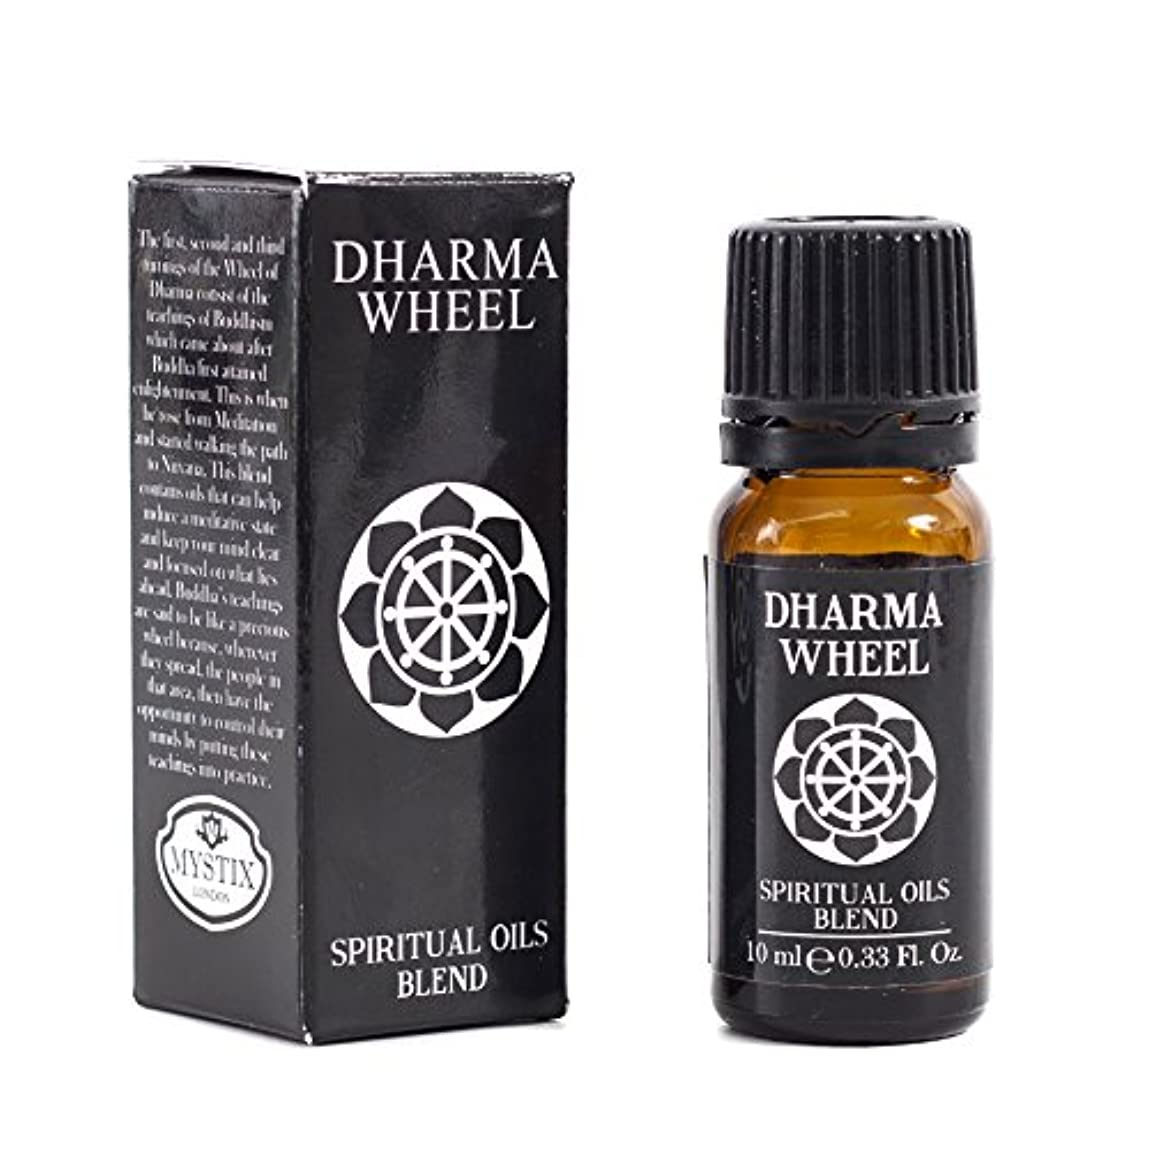 改革にじみ出るMystic Moments | Dharma Wheel | Spiritual Essential Oil Blend - 10ml